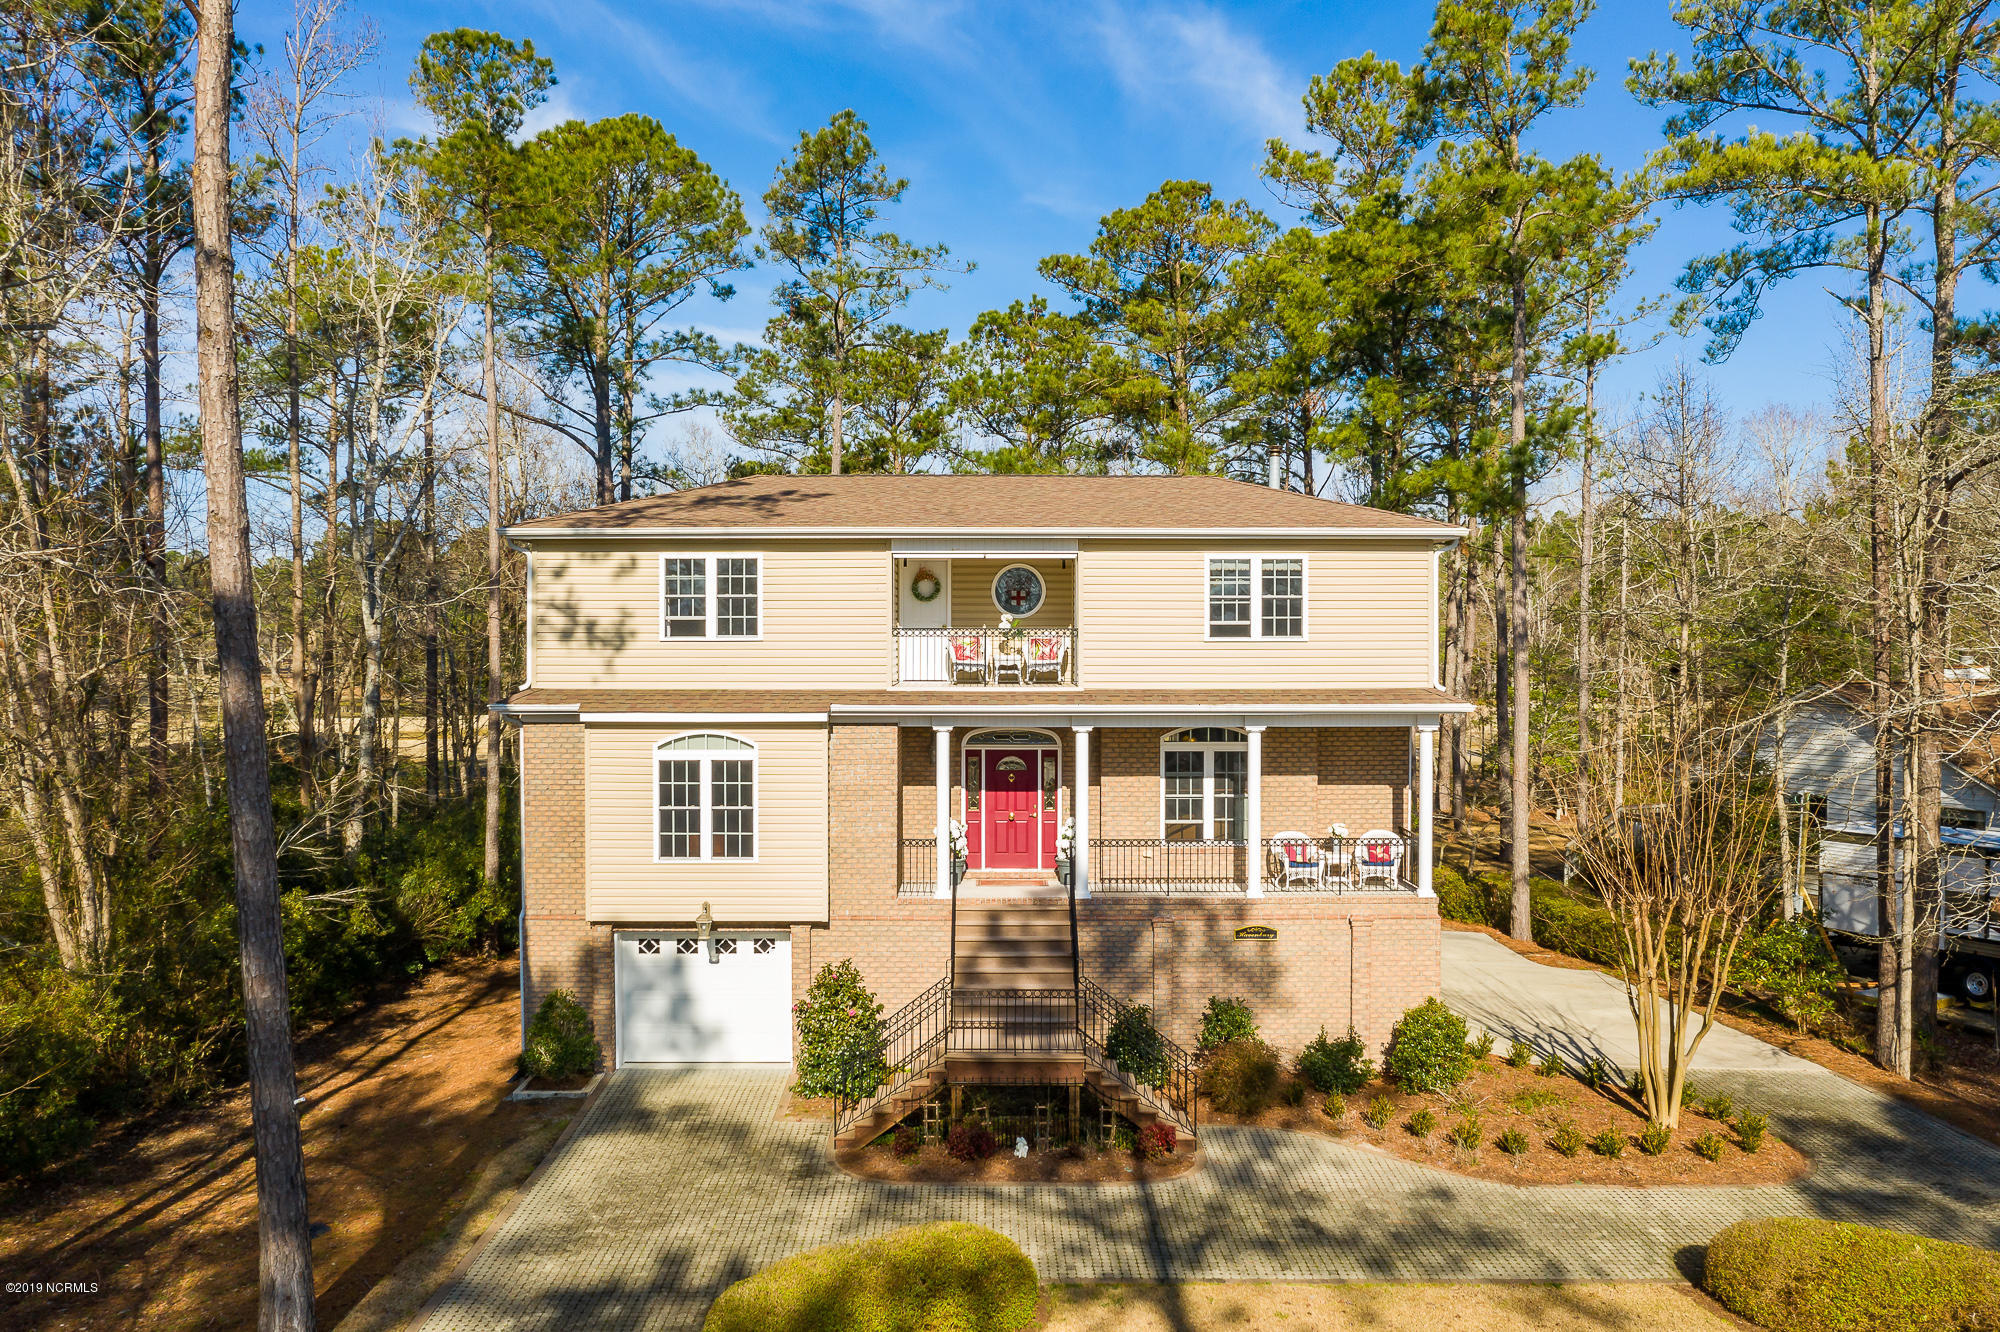 1019 Harbour Pointe Drive, New Bern, North Carolina, 3 Bedrooms Bedrooms, 9 Rooms Rooms,2 BathroomsBathrooms,Single family residence,For sale,Harbour Pointe,100149942